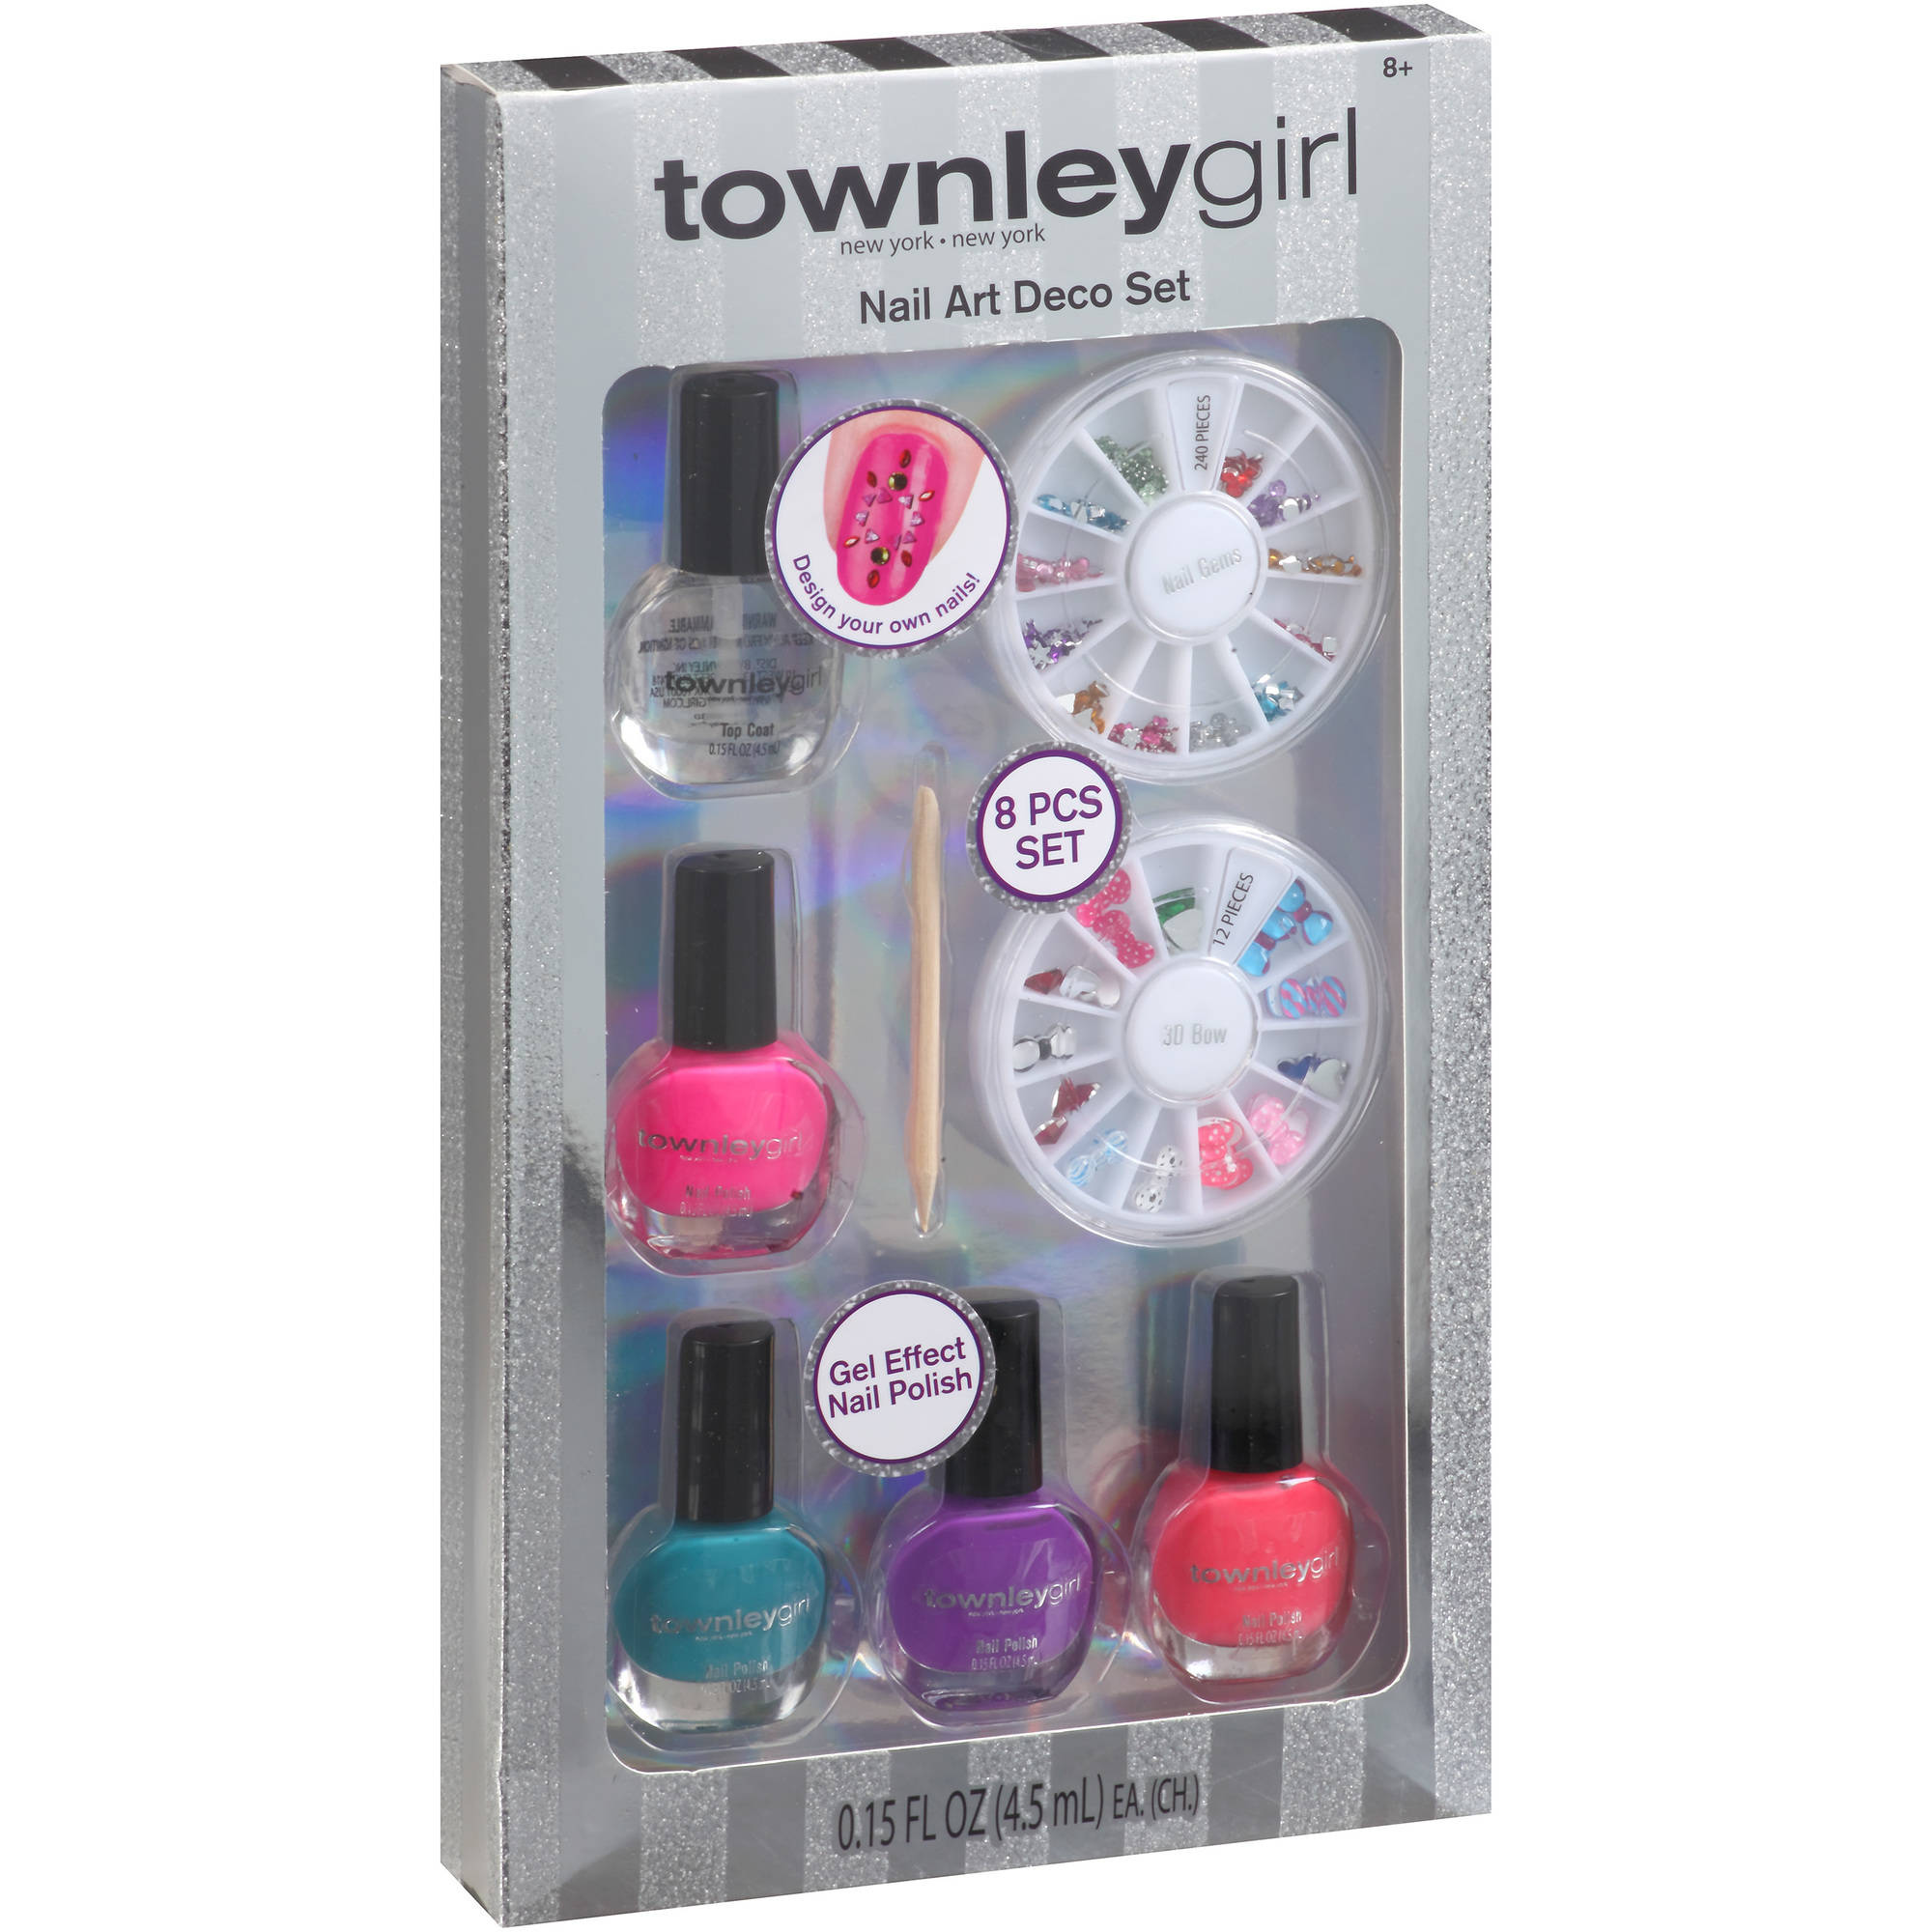 Cosmetics Townleygirl Nail Art Set With Nail Deco - Walmart.com